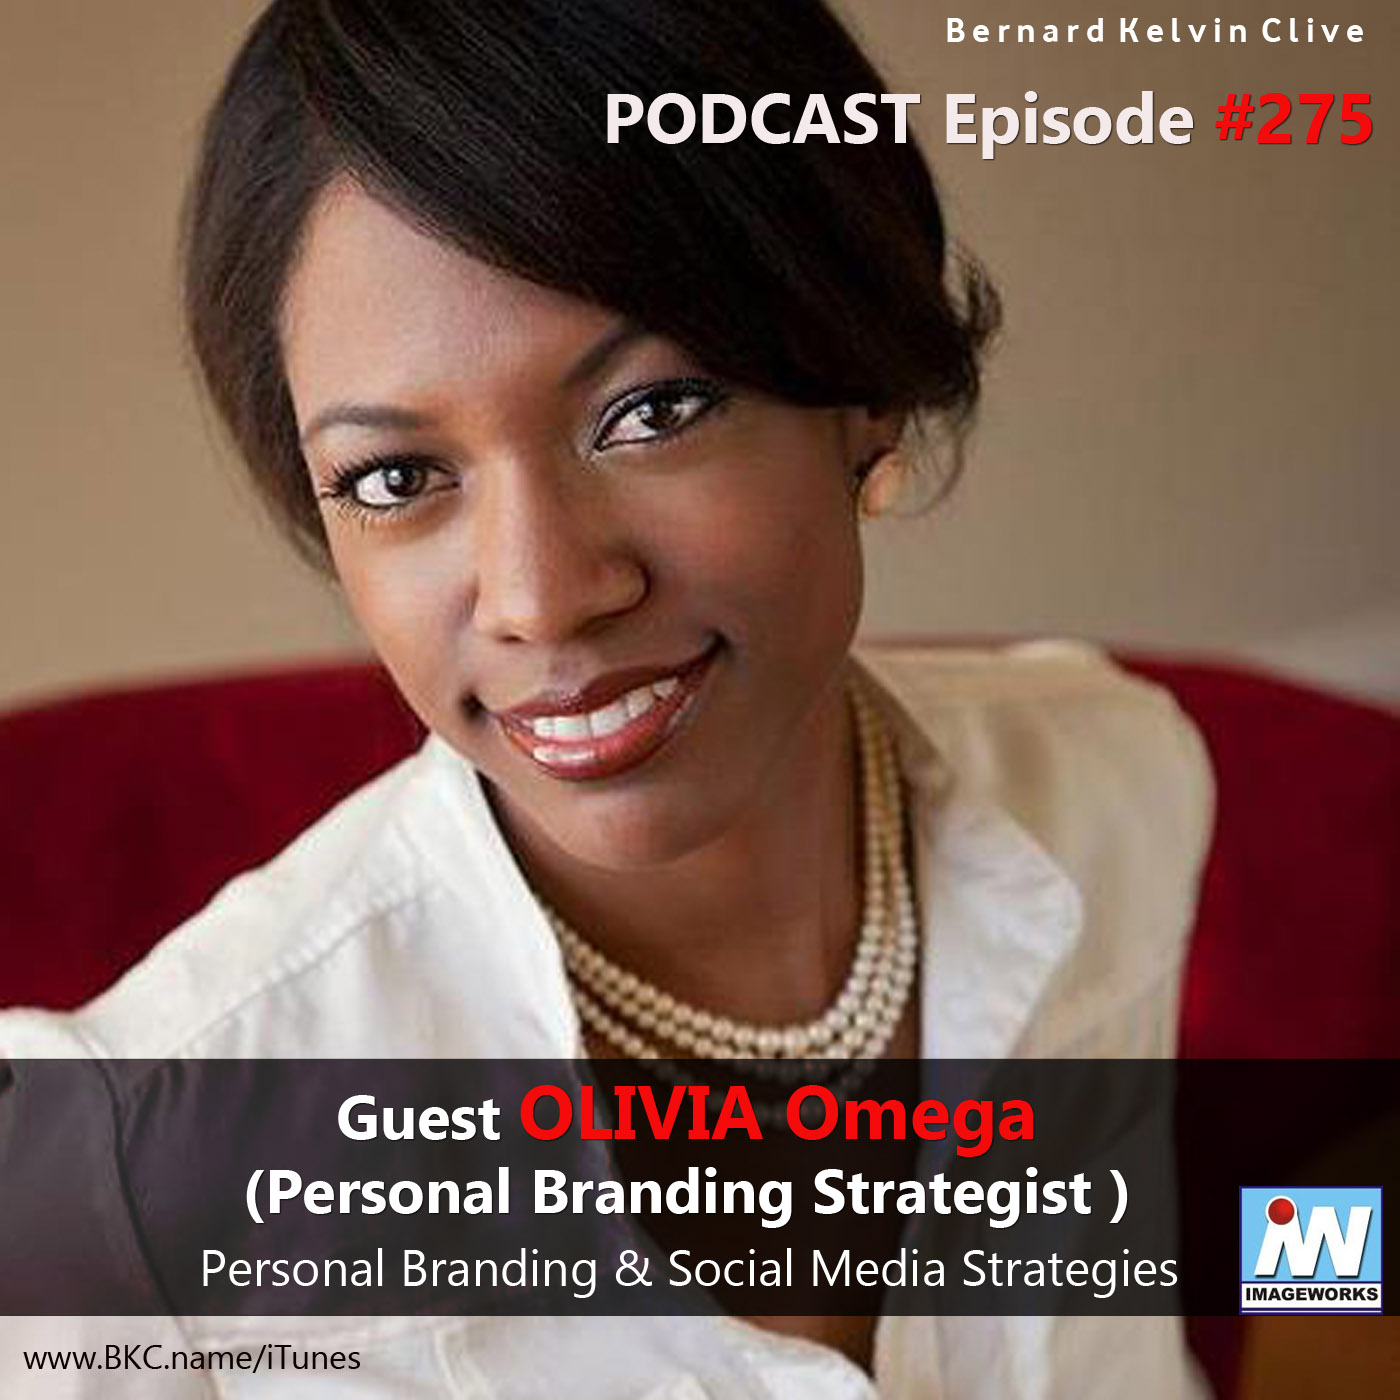 Personal Branding: Attract or Repel with Olivia Omega